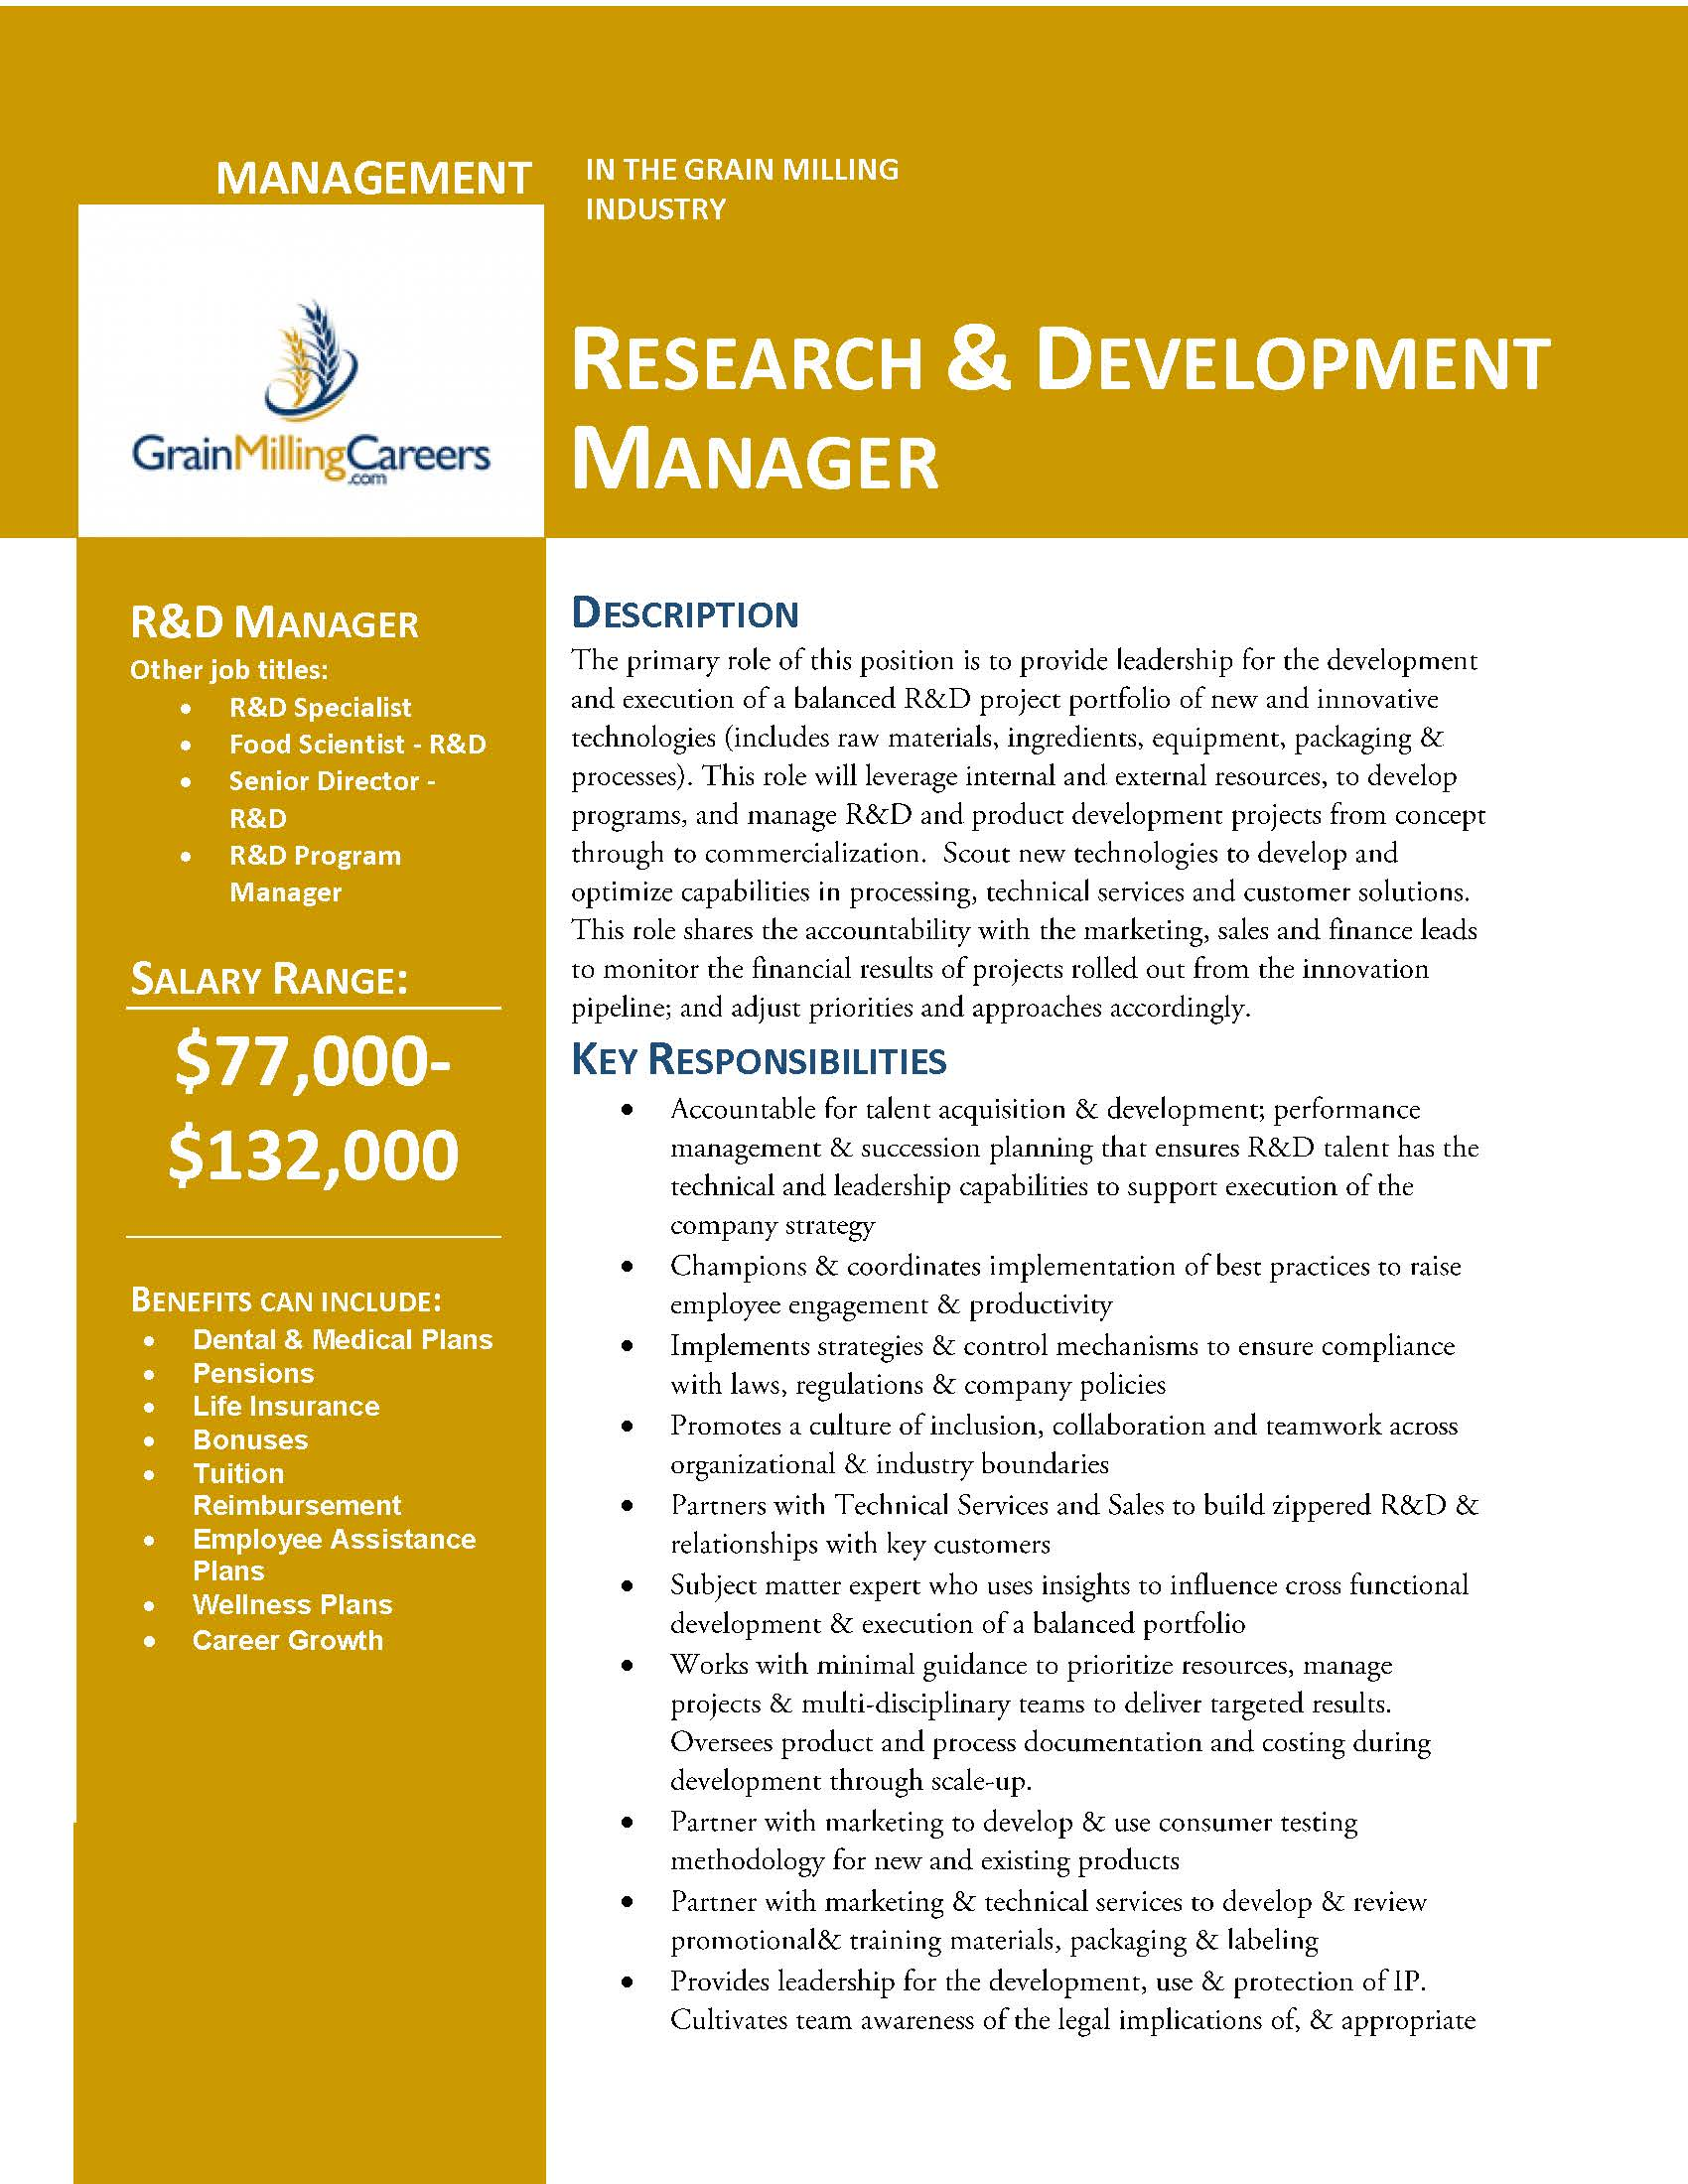 how to become a research and development manager